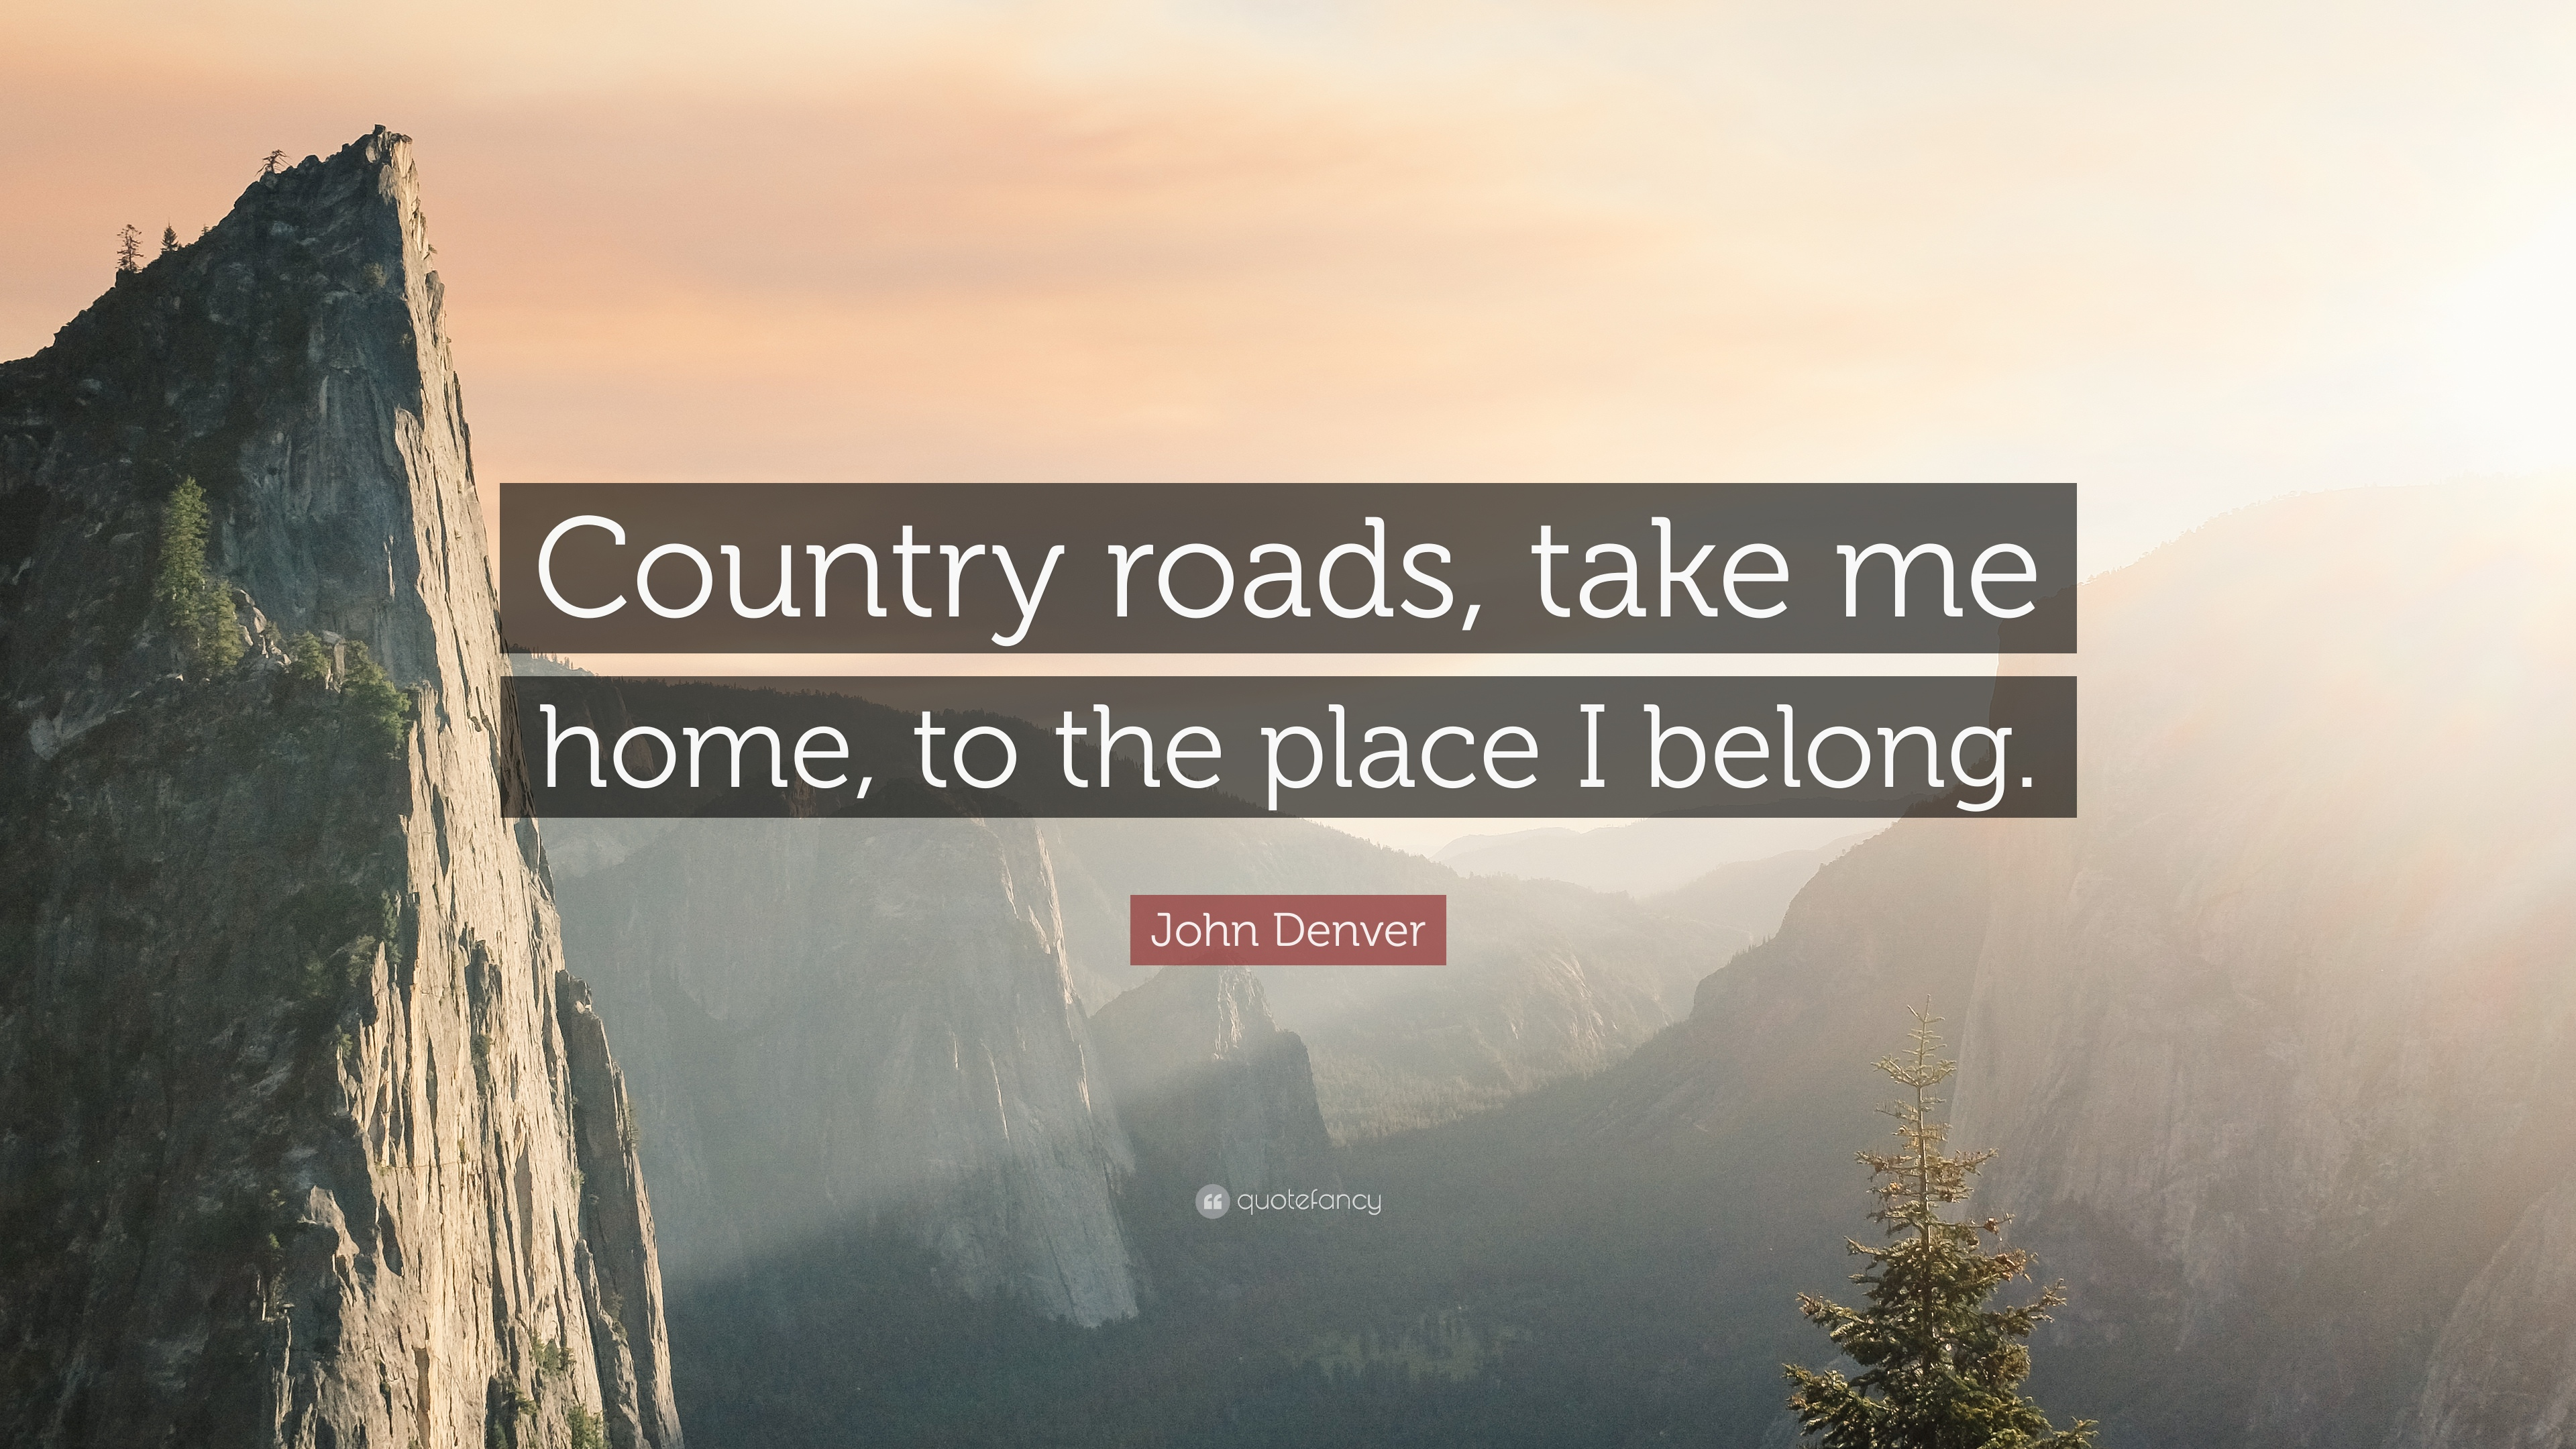 John Denver Quote Country roads take me home to the place I